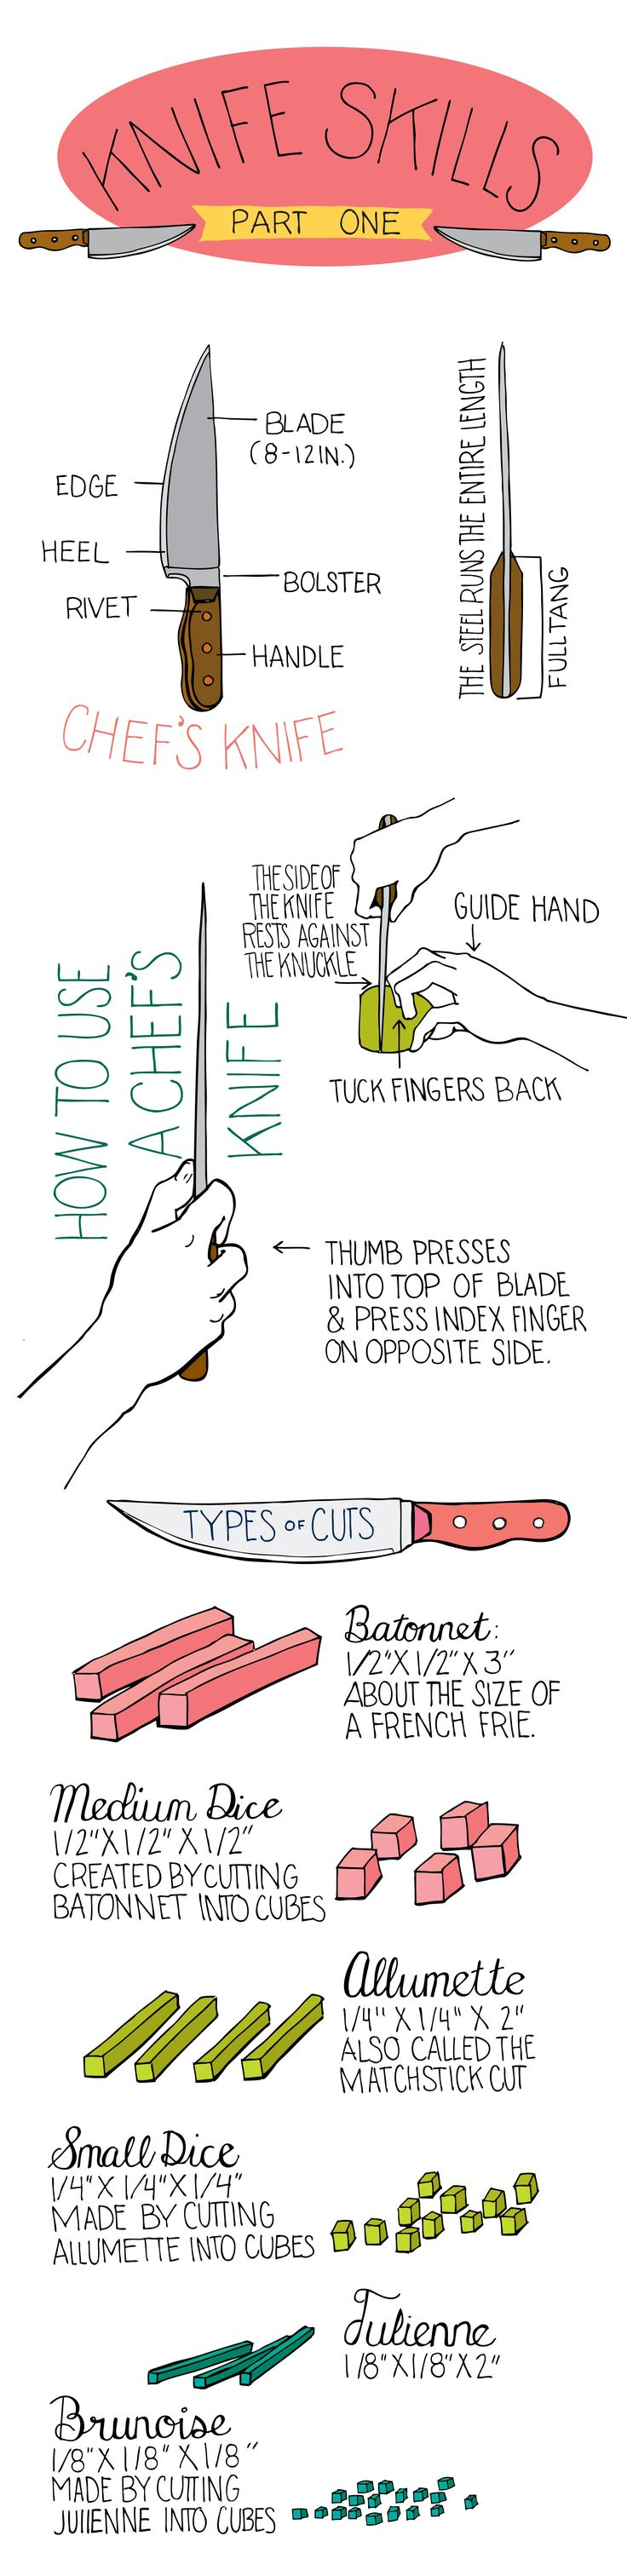 Culinary Arts - Illustrated guide on how to use a chef's knife